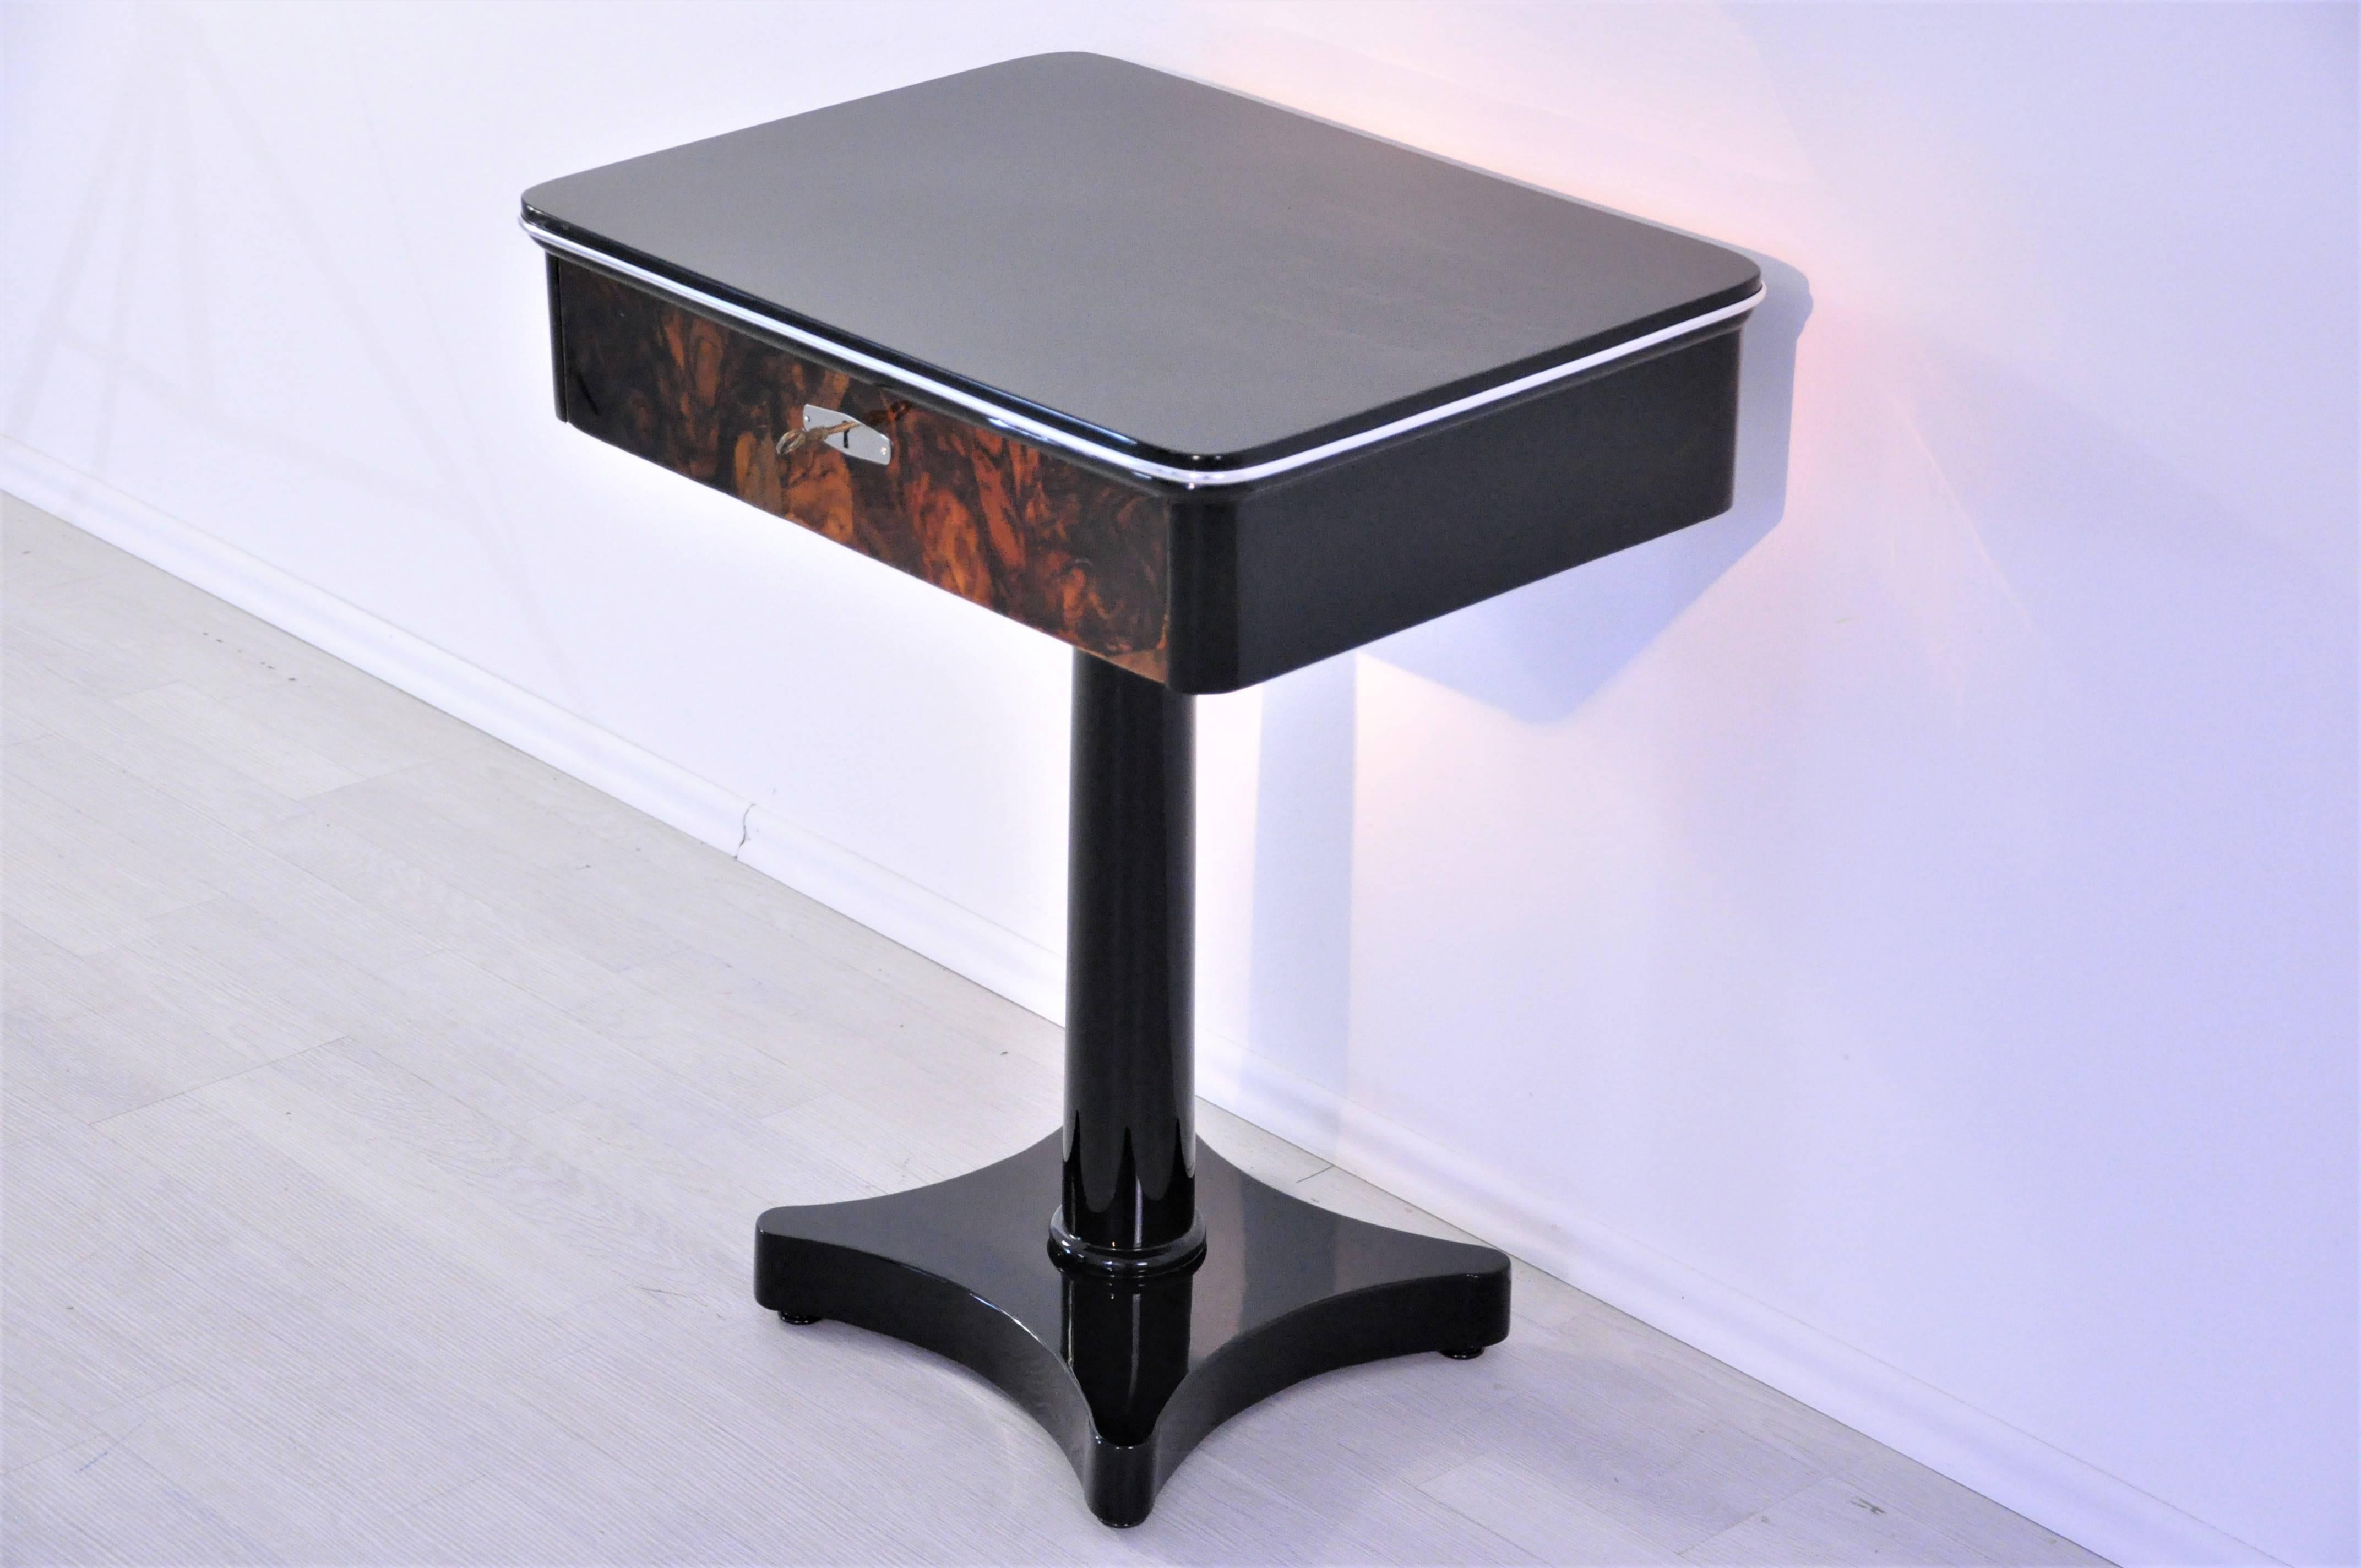 Petite Console Design Art Deco Design Console Table With A Walnut Drawer